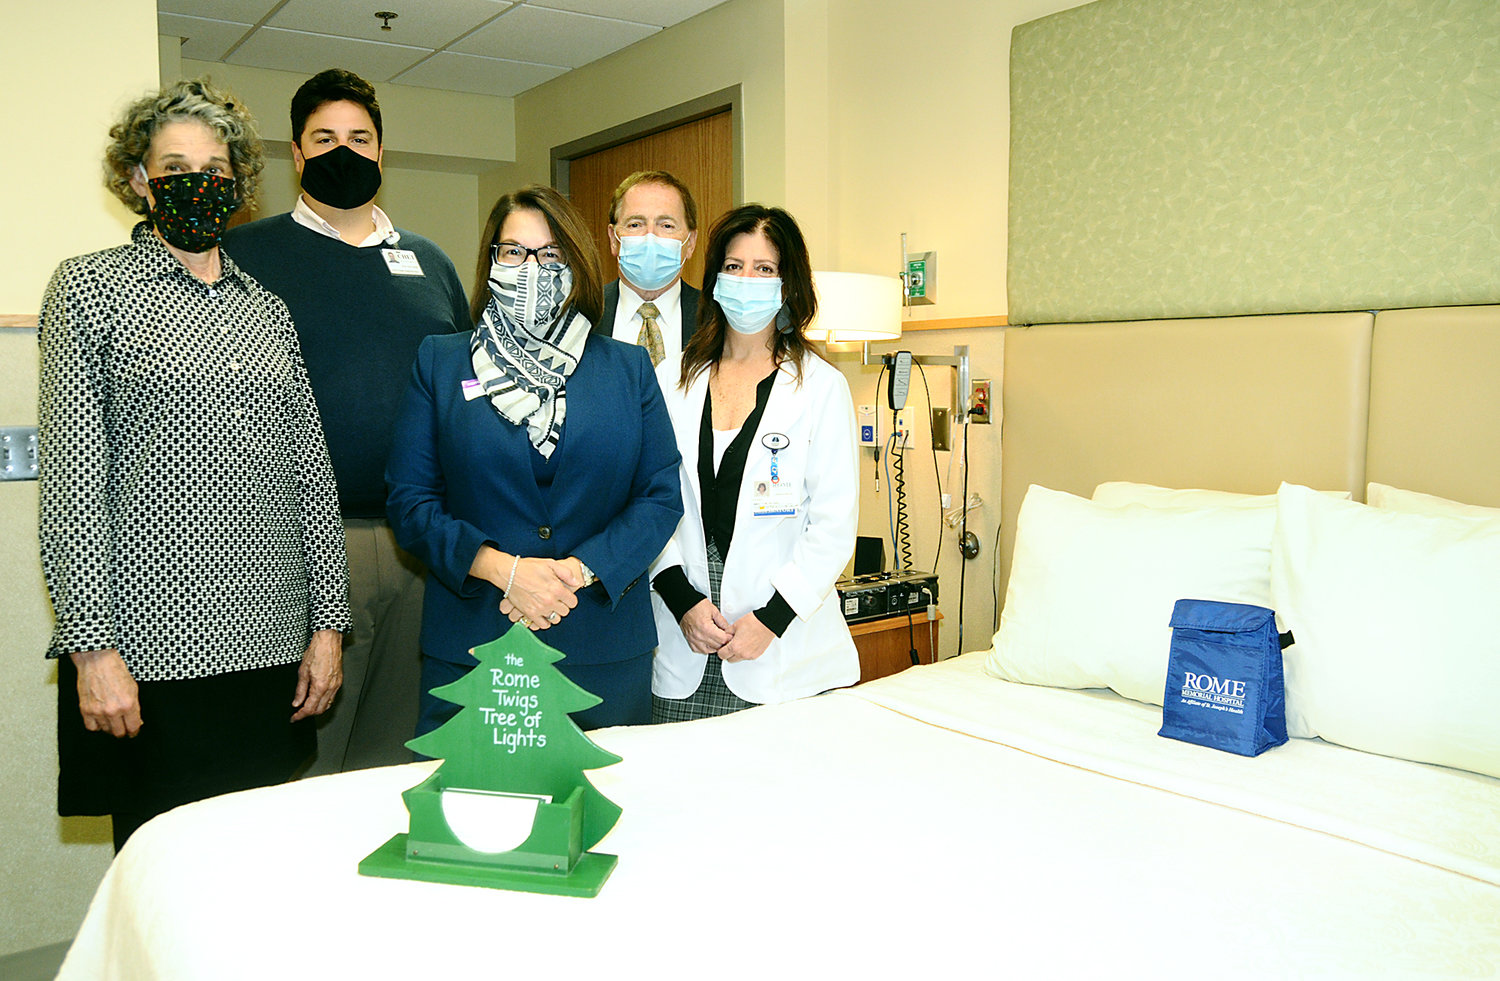 TWIGS KICK OFF TREE OF LIGHTS — Pictured inside the Sleep Disorders Center at Rome Memorial Hospital with the new Sleep Number adjustable bed which was donated by the Twigs are from left: Susan Williams, co-chair of the Rome Twigs Tree of Lights; Chet DiBari III, executive director of the Rome Hospital Foundation; Christina A. Barry and Kevin T. Barry, owners of Barry Funeral Home and Eileen Luley, service line administrator for cardio pulmonary and sleep services at Rome Memorial Hospital. Barry Funeral Home is the sponsor of the event, which will take place Sunday, Dec. 6 at 6:30 p.m. Last year's campaign raised over $10,000, which the Twigs then donated to programs that benefit patient care at the hospital.